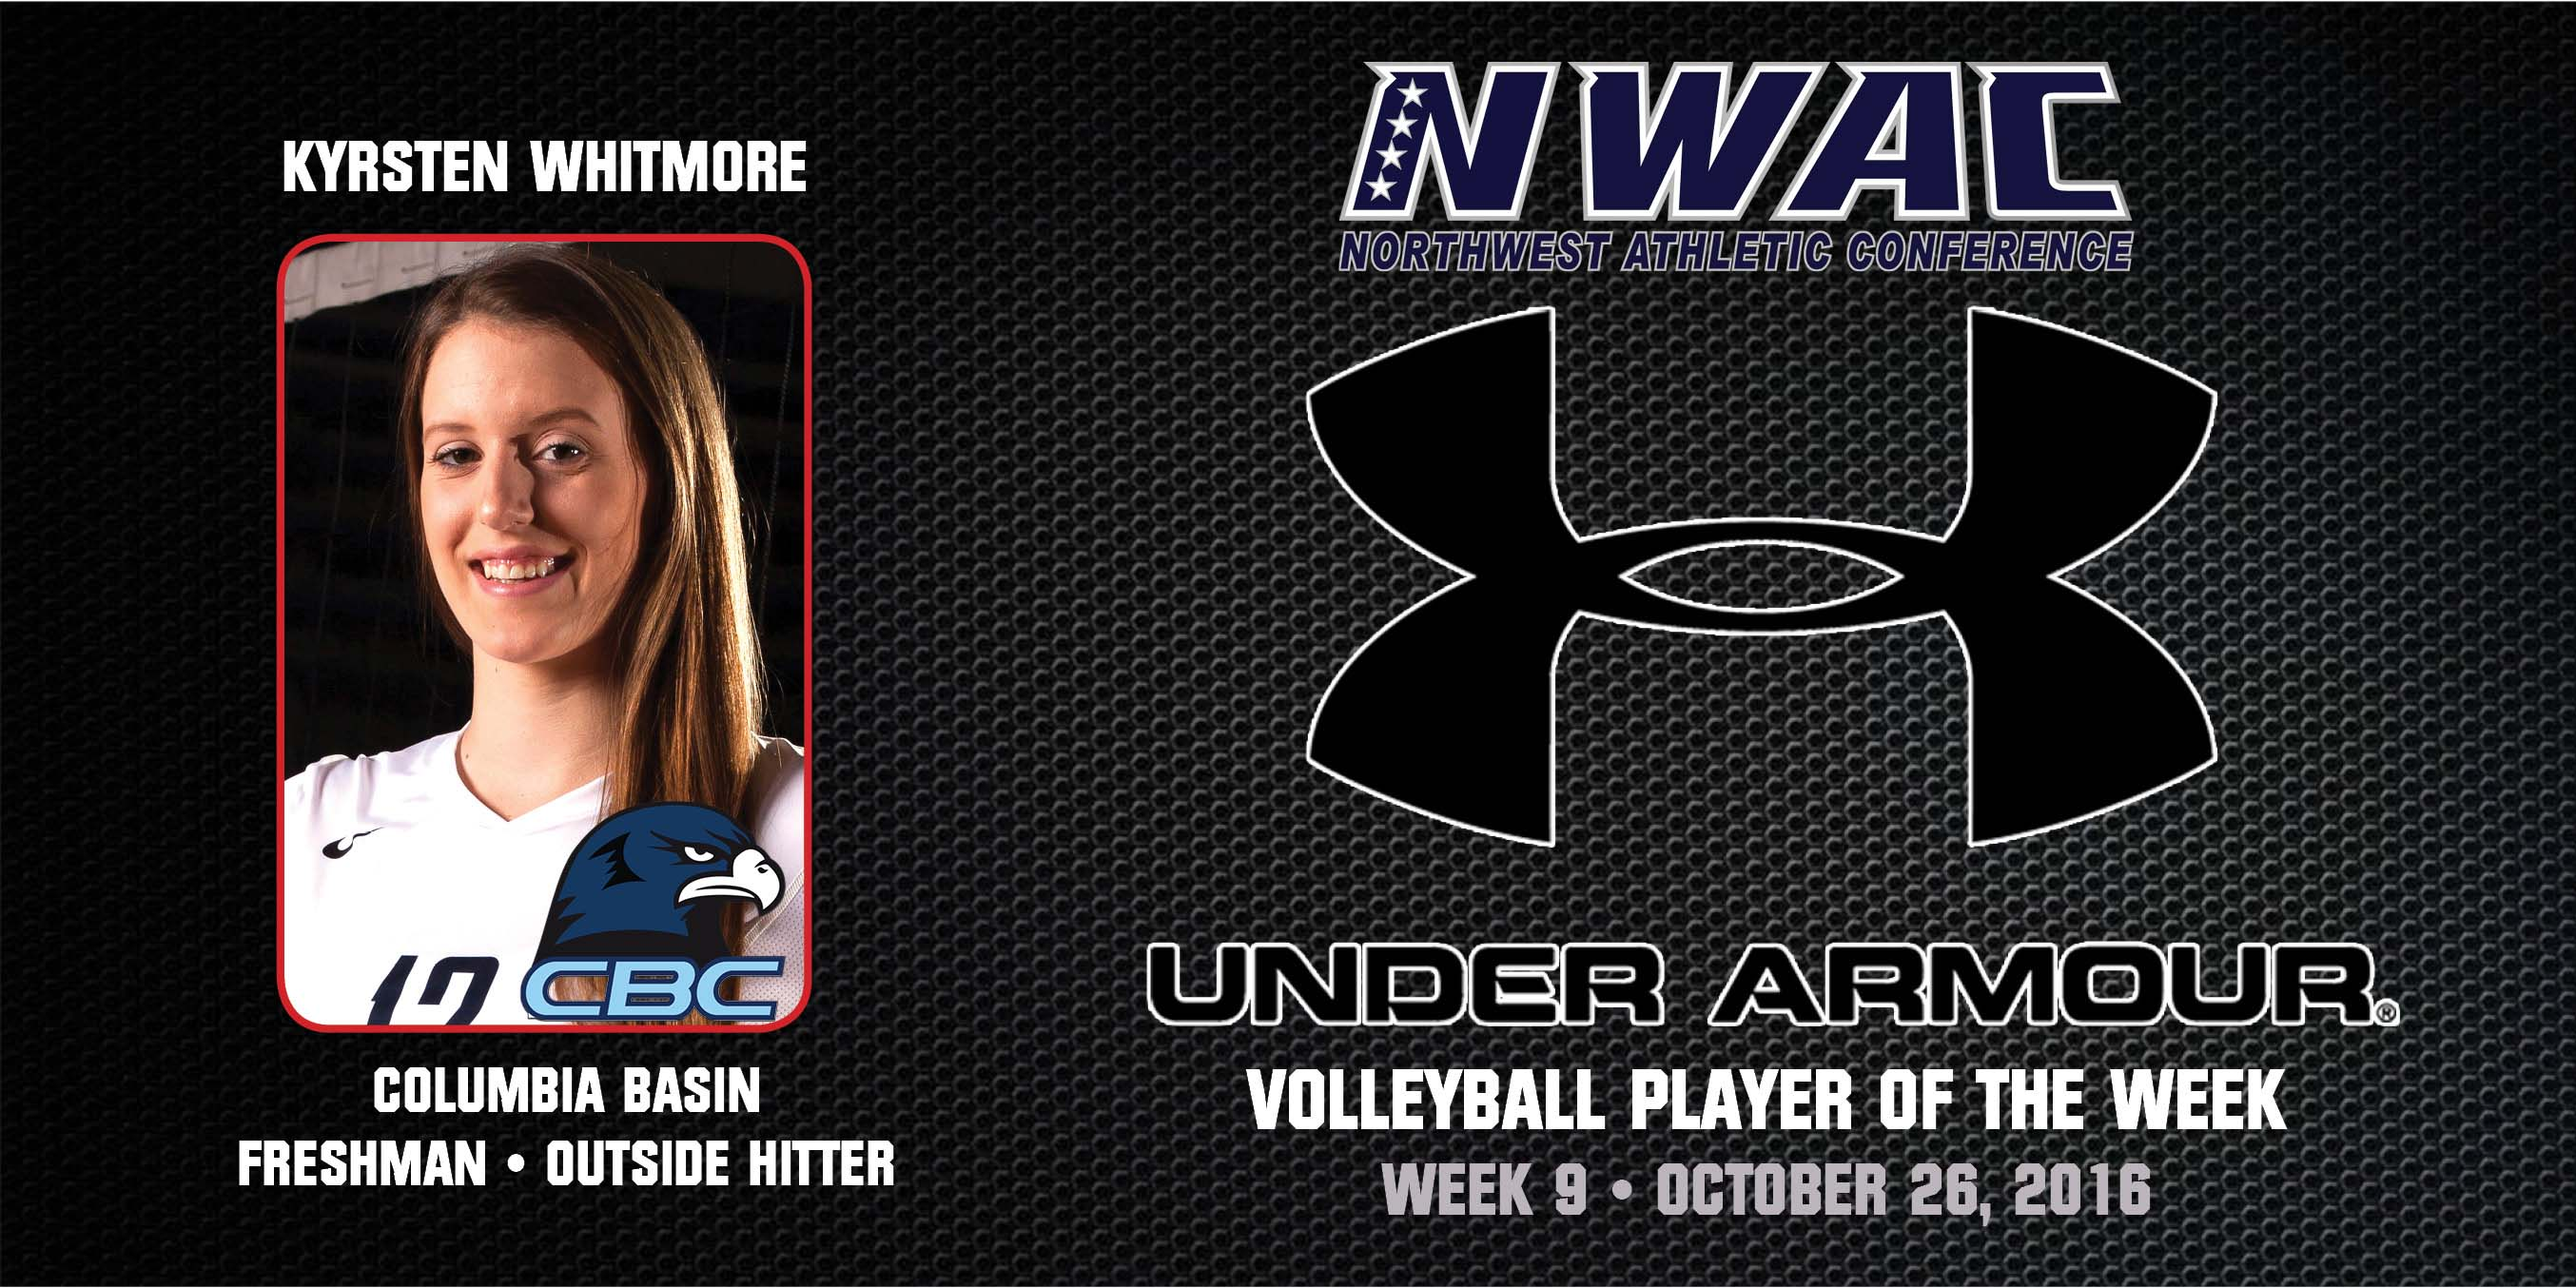 Kyrsten Whitmore Under Armour Player of the Week